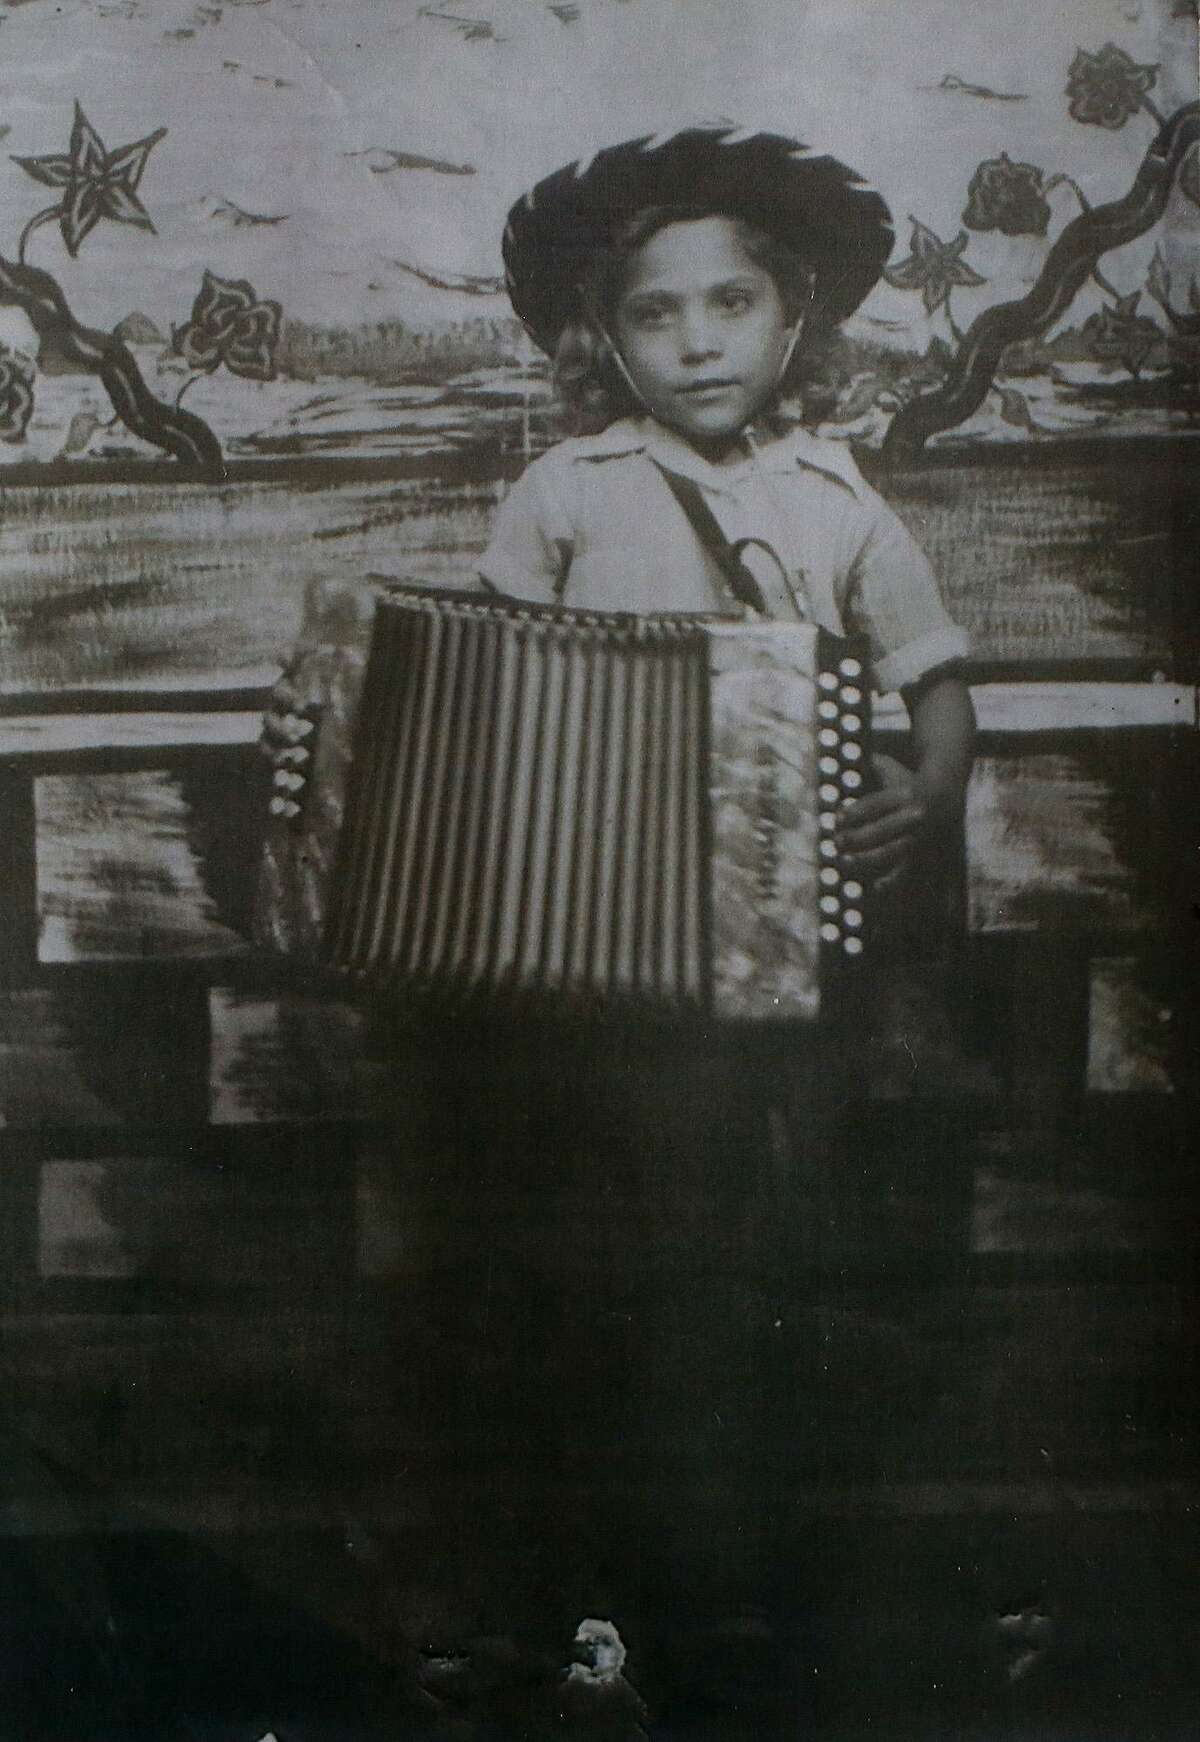 Eva Ybarra has been playing the accordion since the age of 4. Ybarra believes she is 5 or 6 in this photograph.